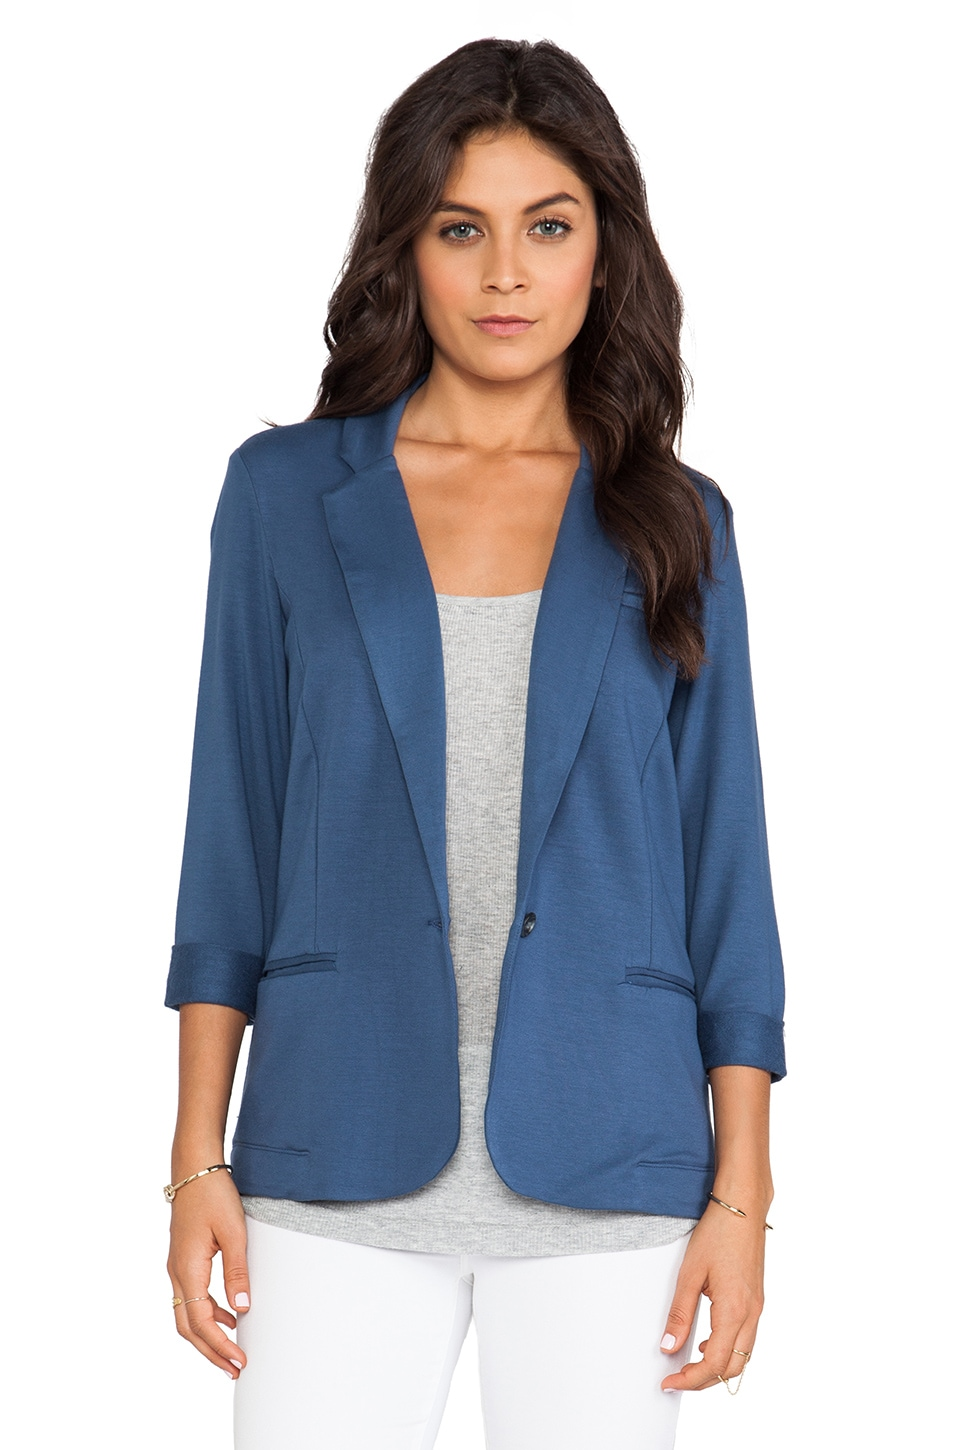 Soft Joie Trevor Blazer in Dark Denim